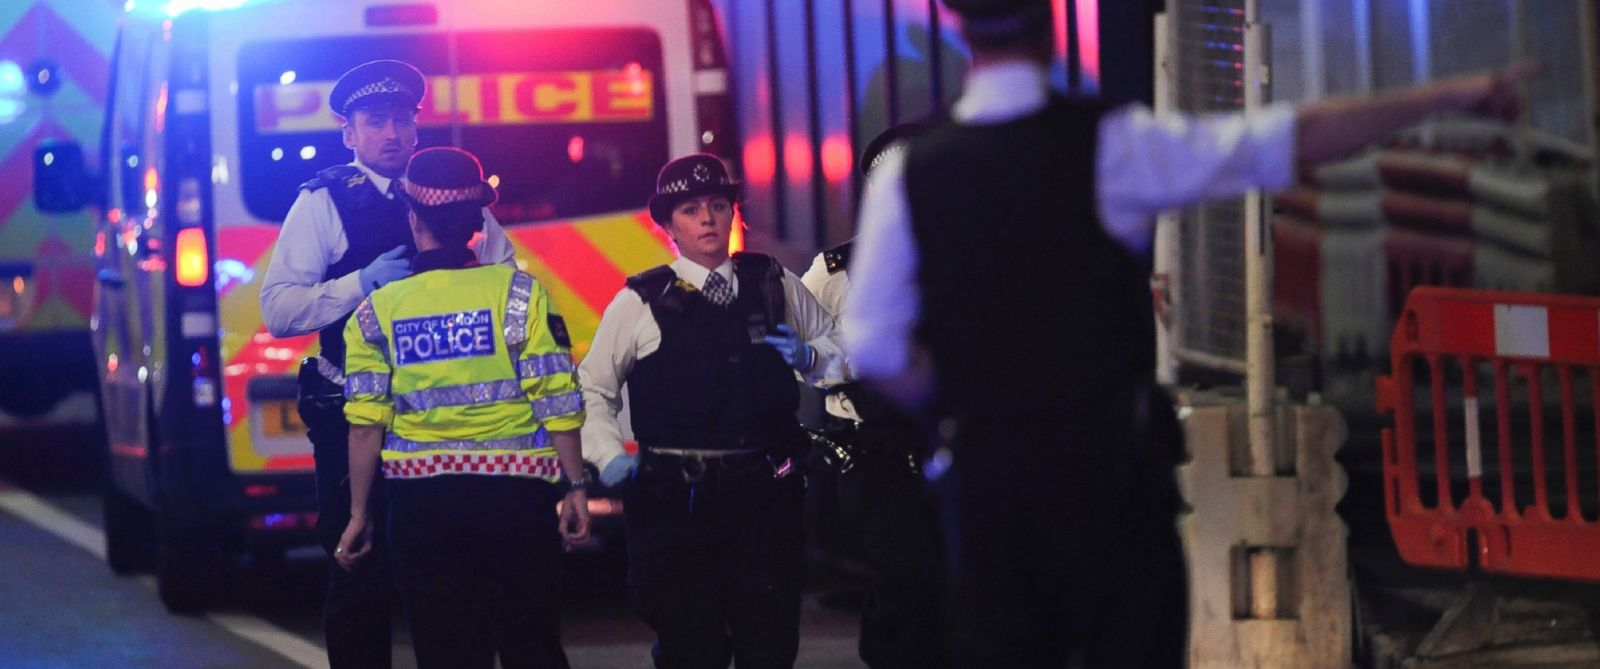 PHOTO: Police officers run at the scene of an apparent terror attack on London Bridge in central London on June 3, 2017.